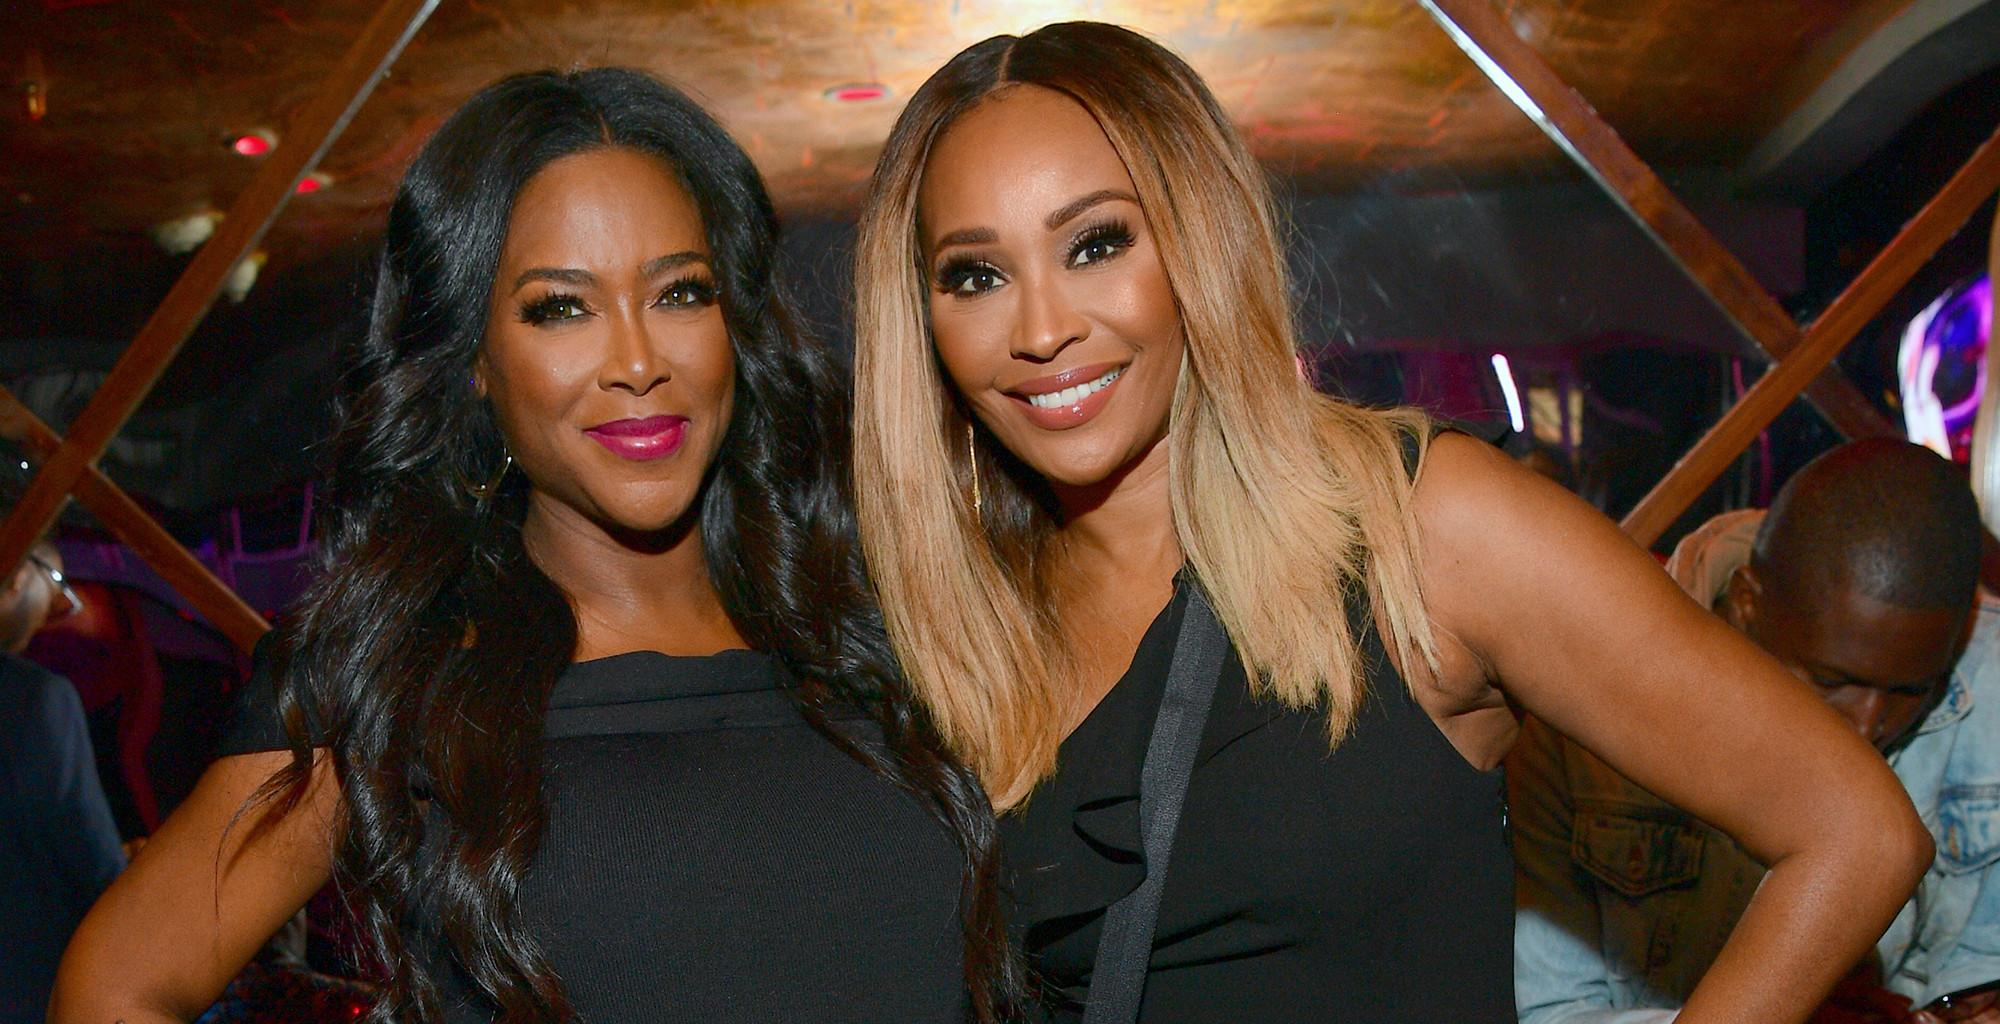 Kenya Moore's Latest Video Has Fans Saying That NeNe Leakes Will Be Mad Seeing It - Here's Why